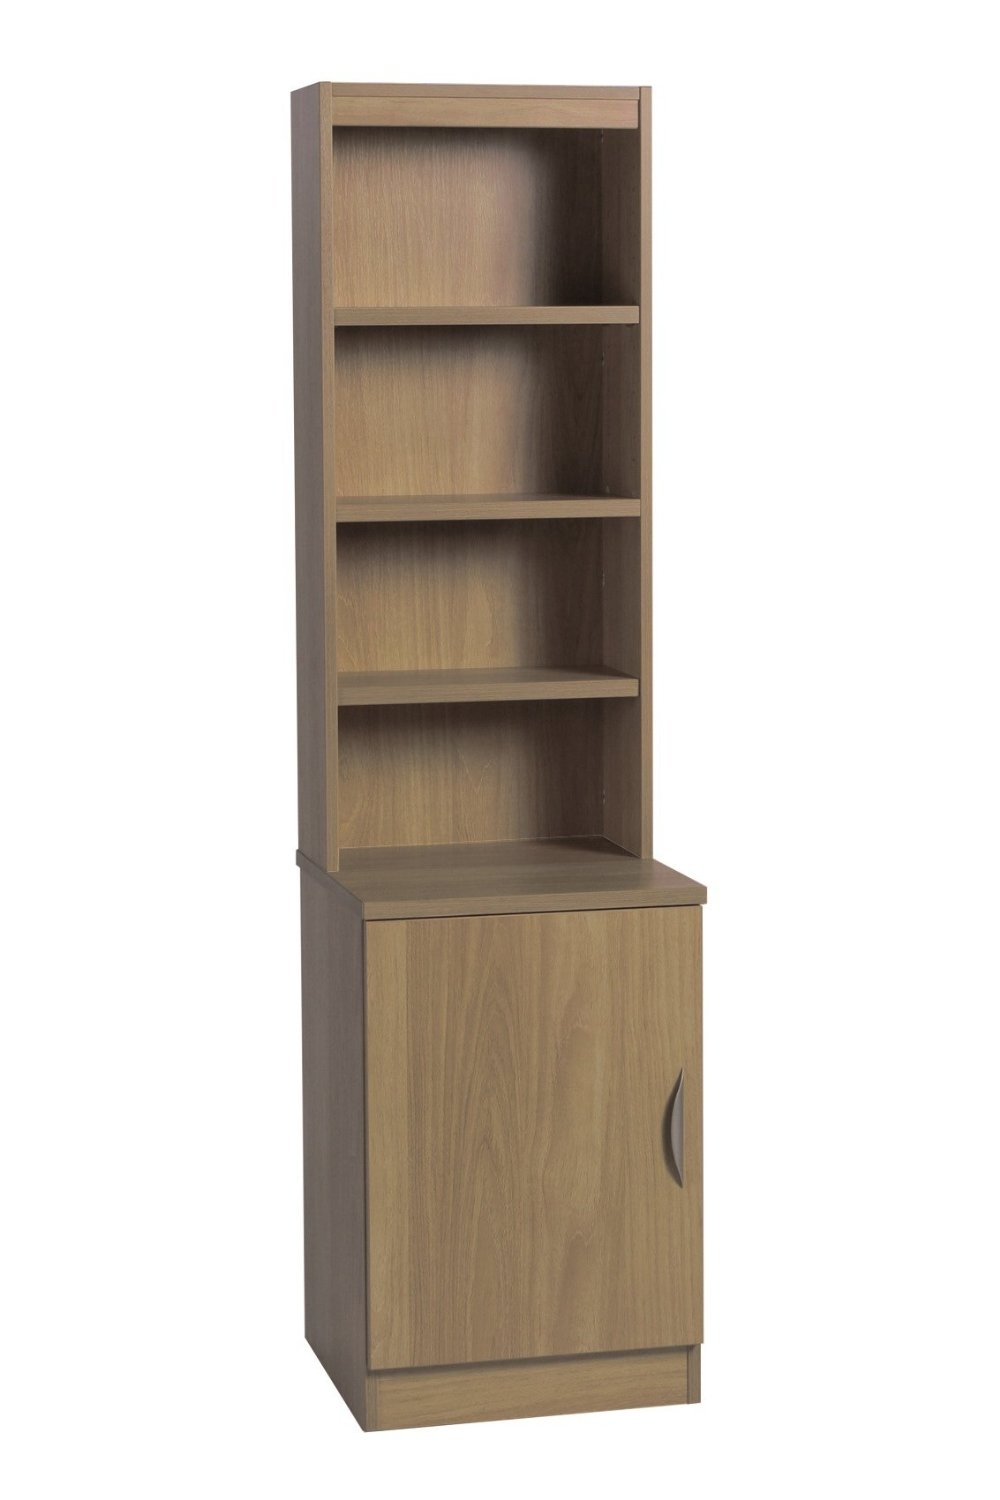 DESK HEIGHT CUPBOARD 480MM WIDE WITH HUTCH